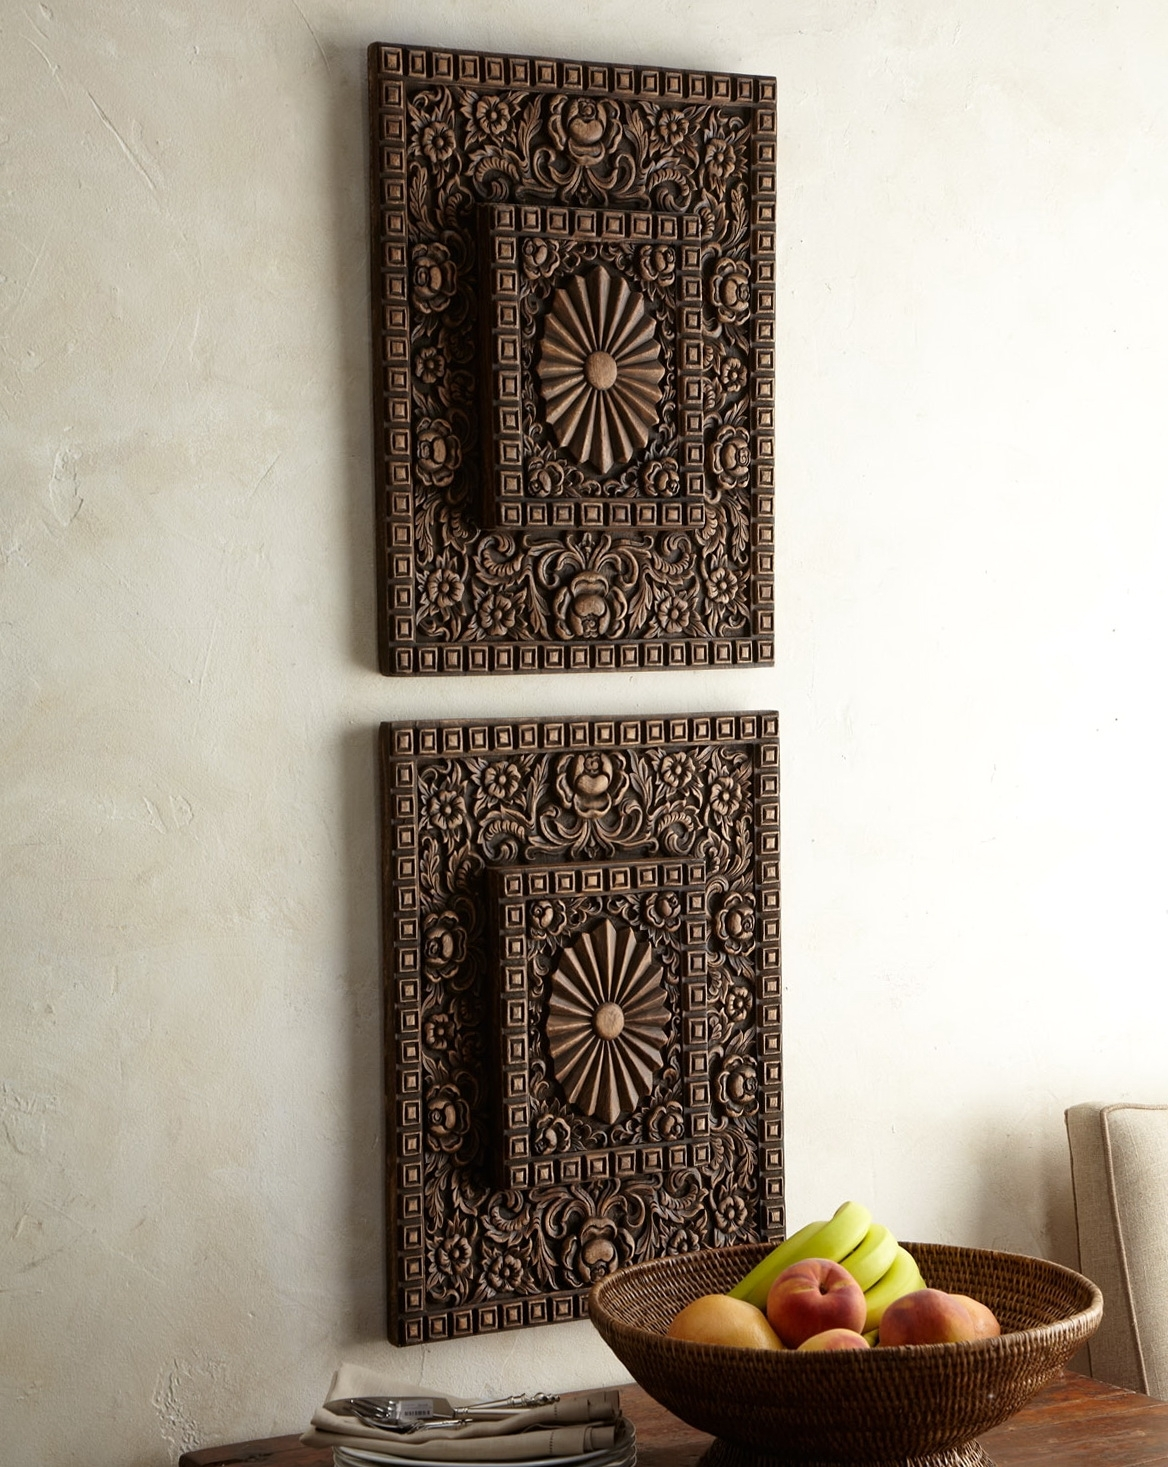 Amazing Asian Wall Decor – Asian Wall Decor Ideas Designs Intended For Most Current Asian Wall Accents (View 1 of 15)